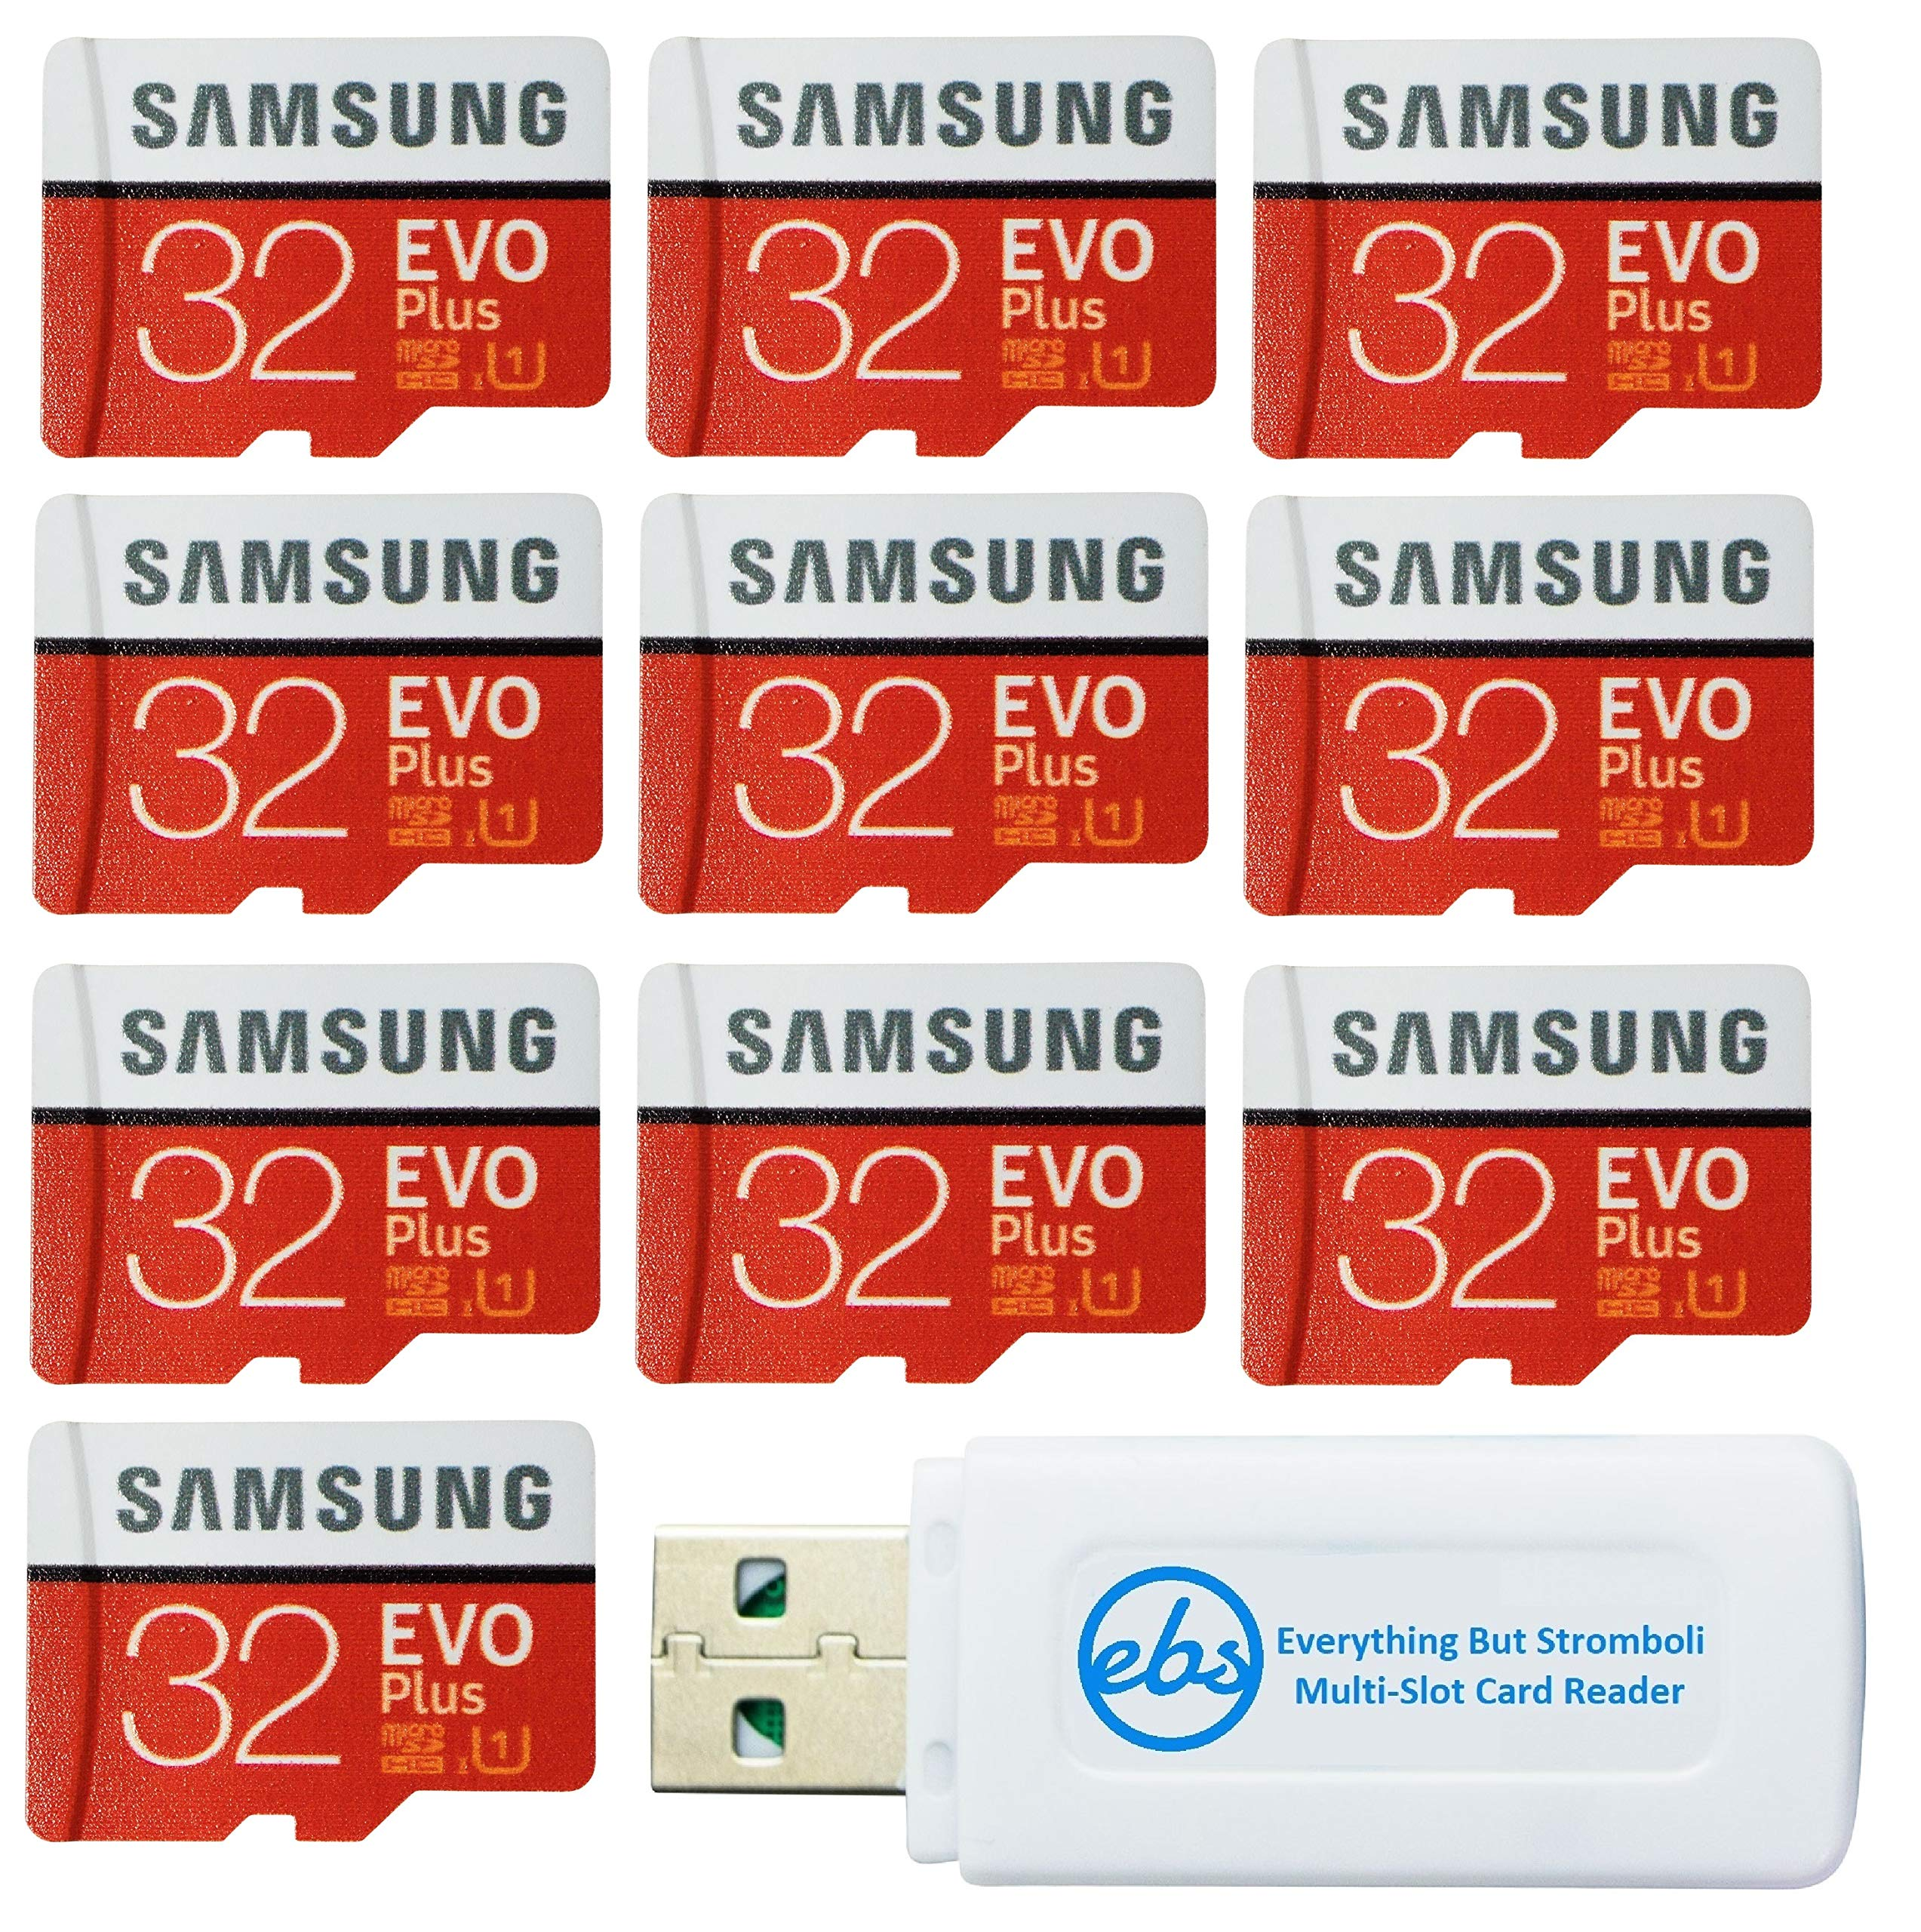 Samsung 32GB Evo Plus MicroSD Card (10 Pack EVO+ Bundle) Class 10 SDHC Memory Card with Adapter (MB-MC32G) with (1) Everything But Stromboli (TM) Micro & SD Card Reader by Samsung